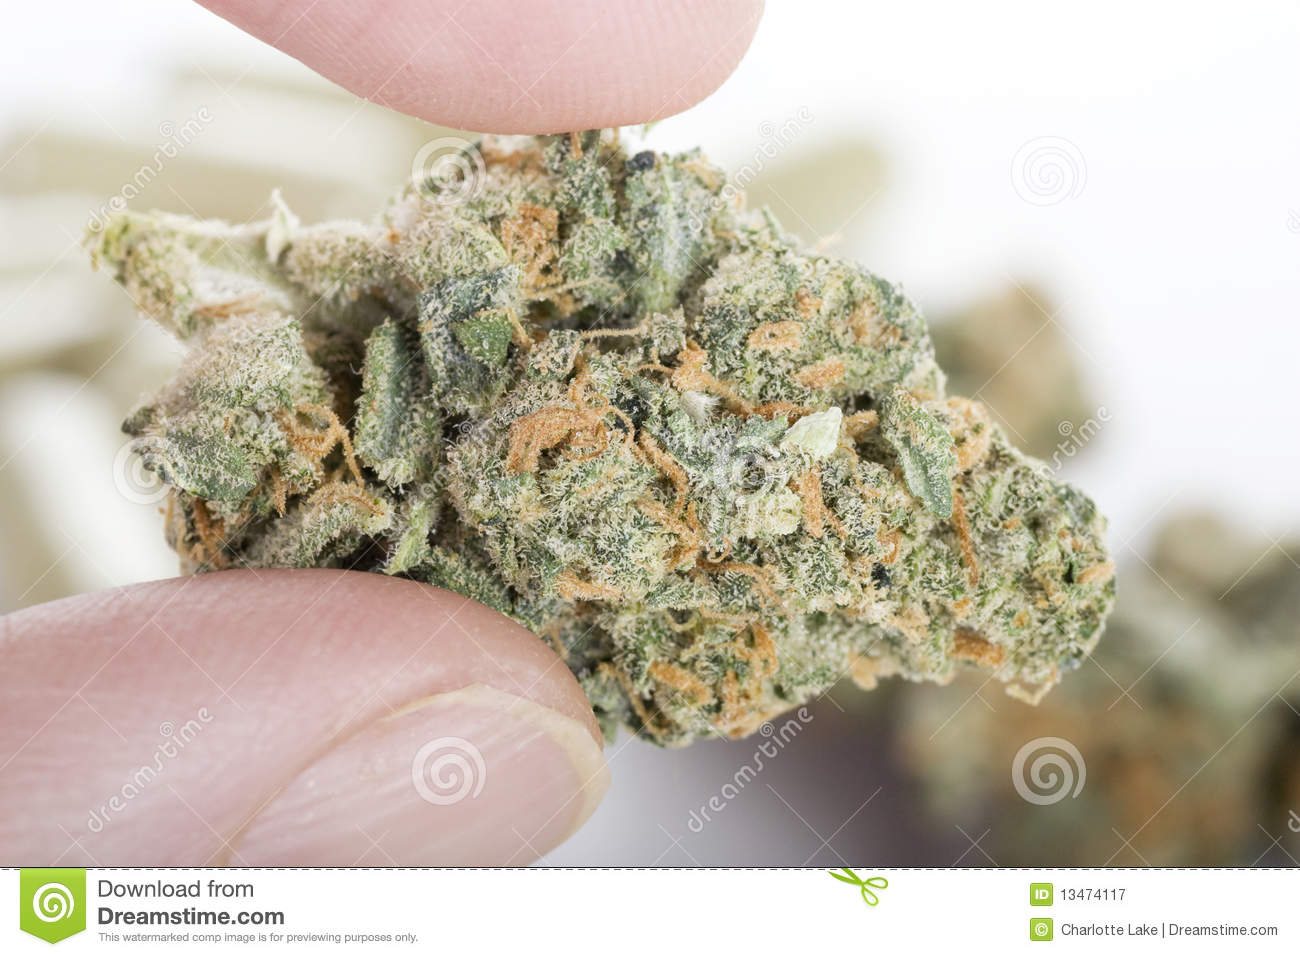 medicinal marijuana Find medical marijuana doctors near you today search our database of  hundreds of doctors, see their info, costs and reviews.